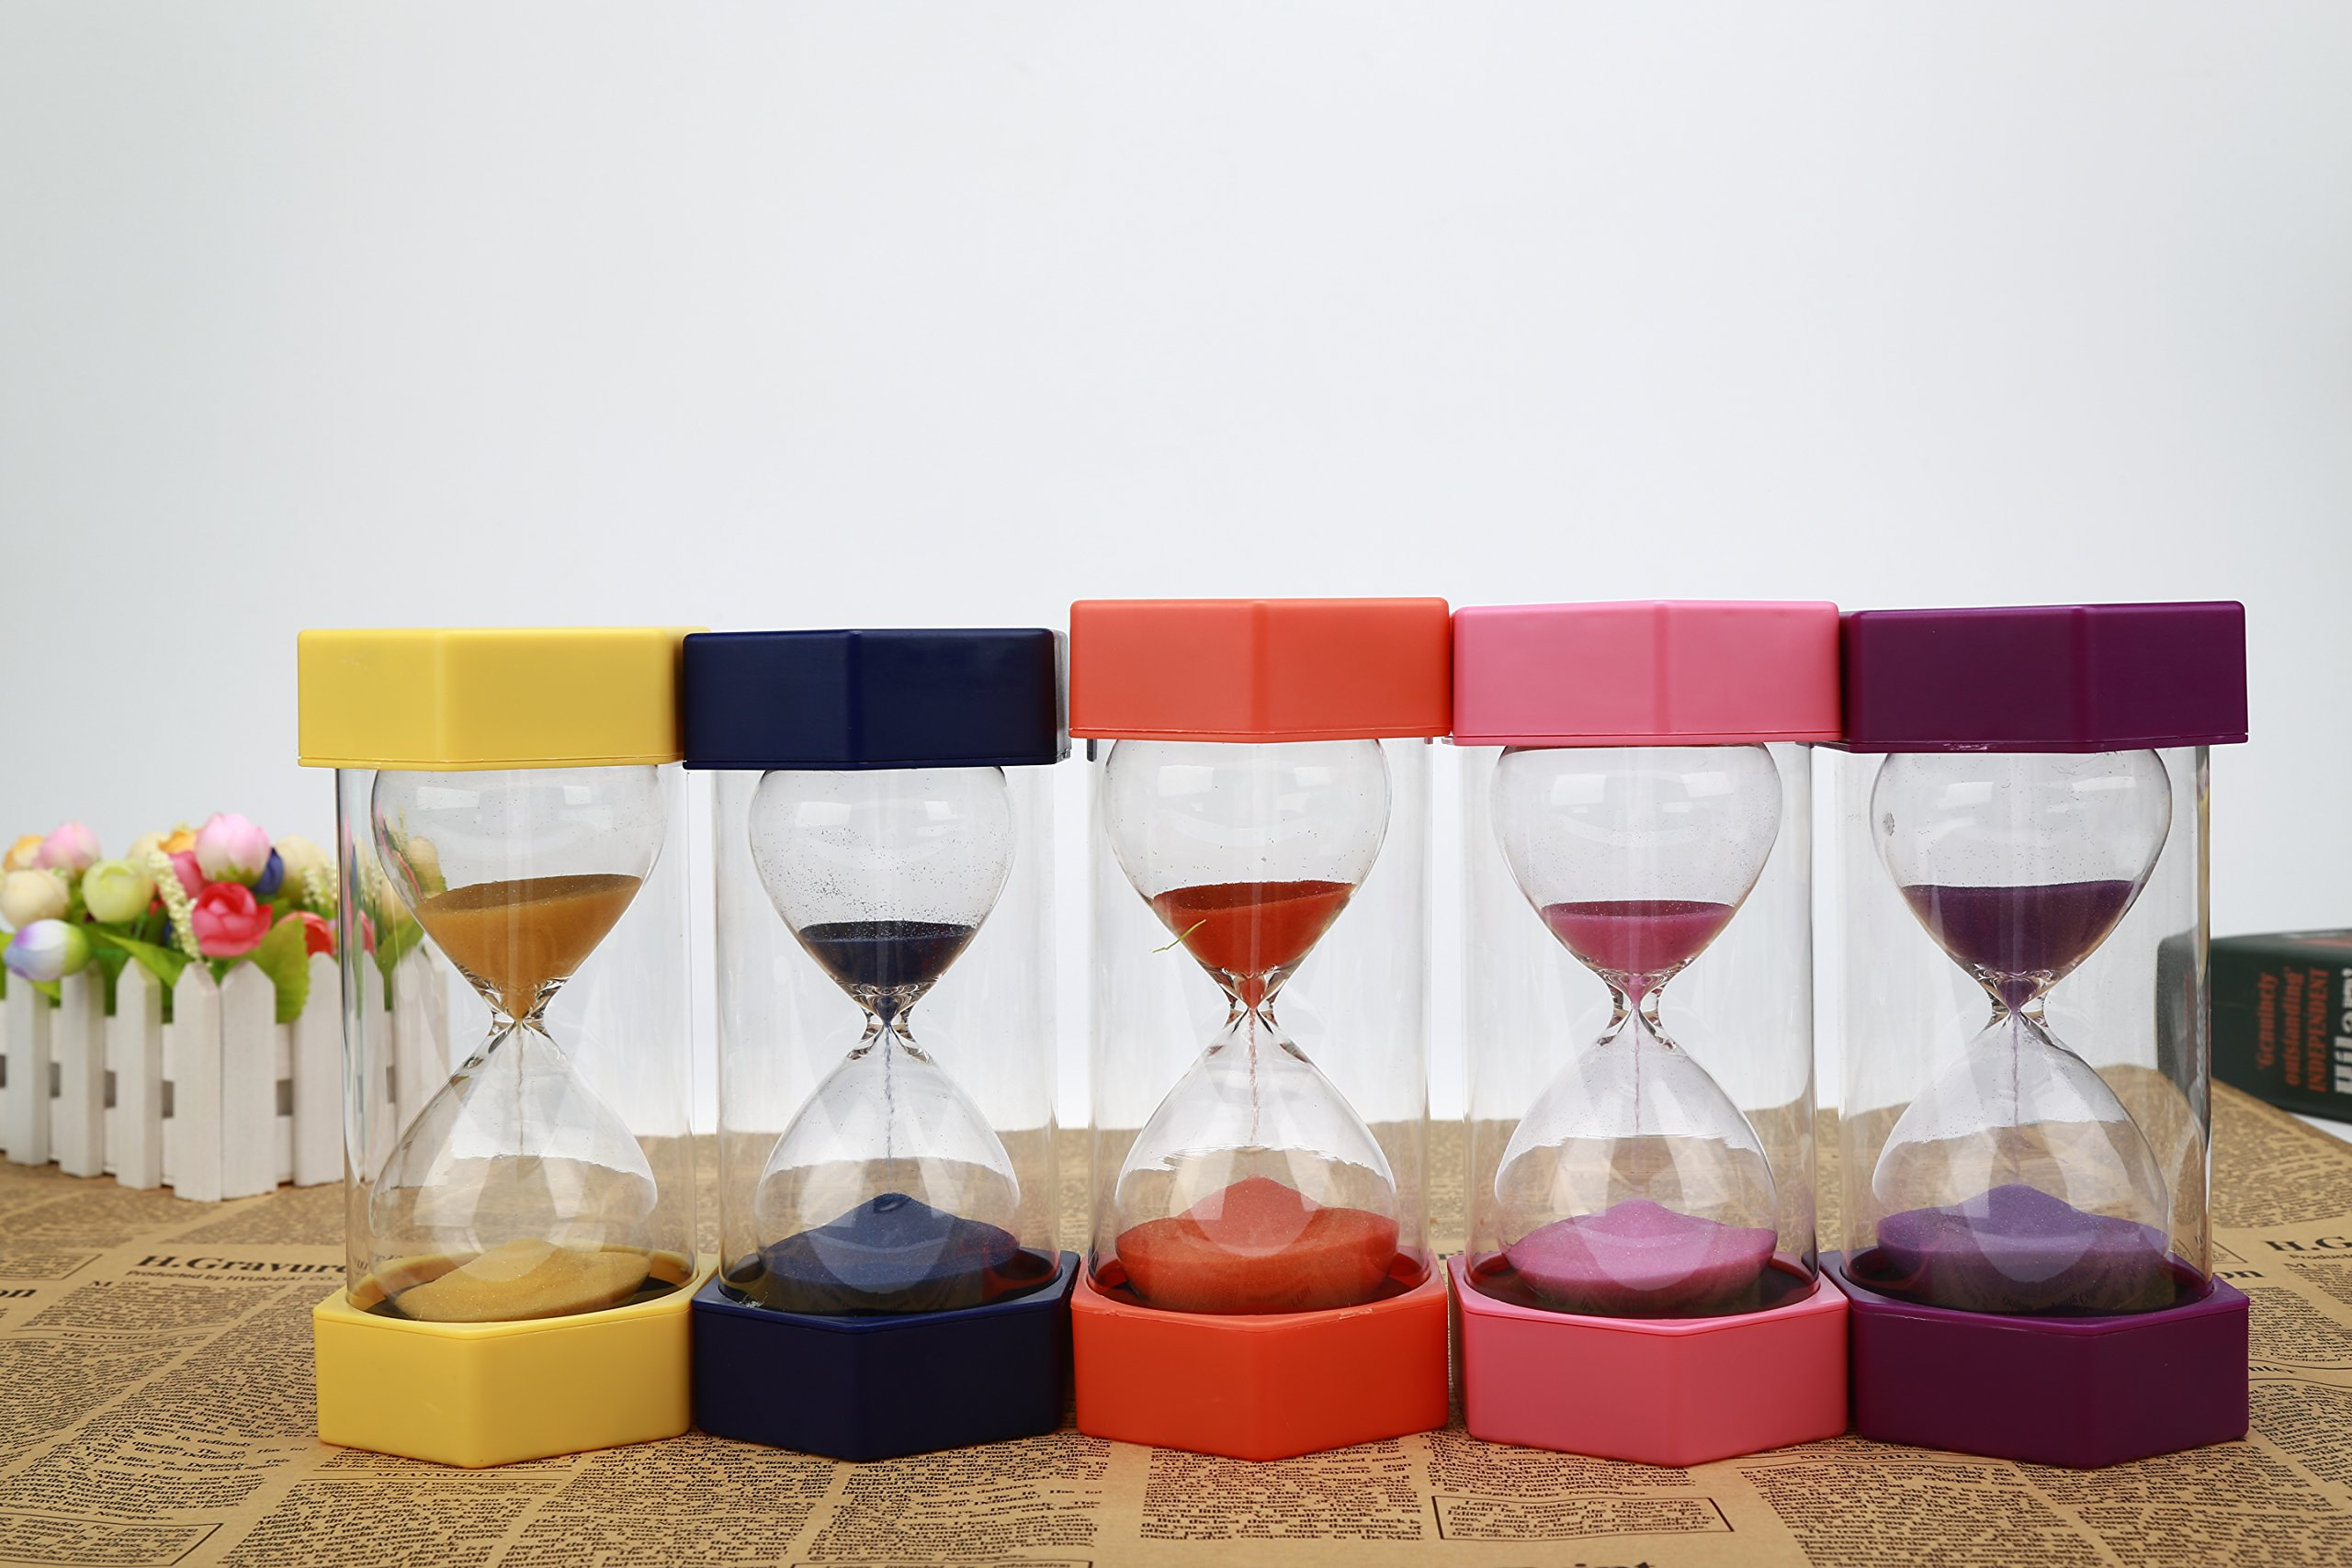 VEOLEY 10 Minute Sand Timer Security Fashion Hourglass for Kids, Classroom, Game,Kitchen,lunch-Pink by VEOLEY (Image #6)